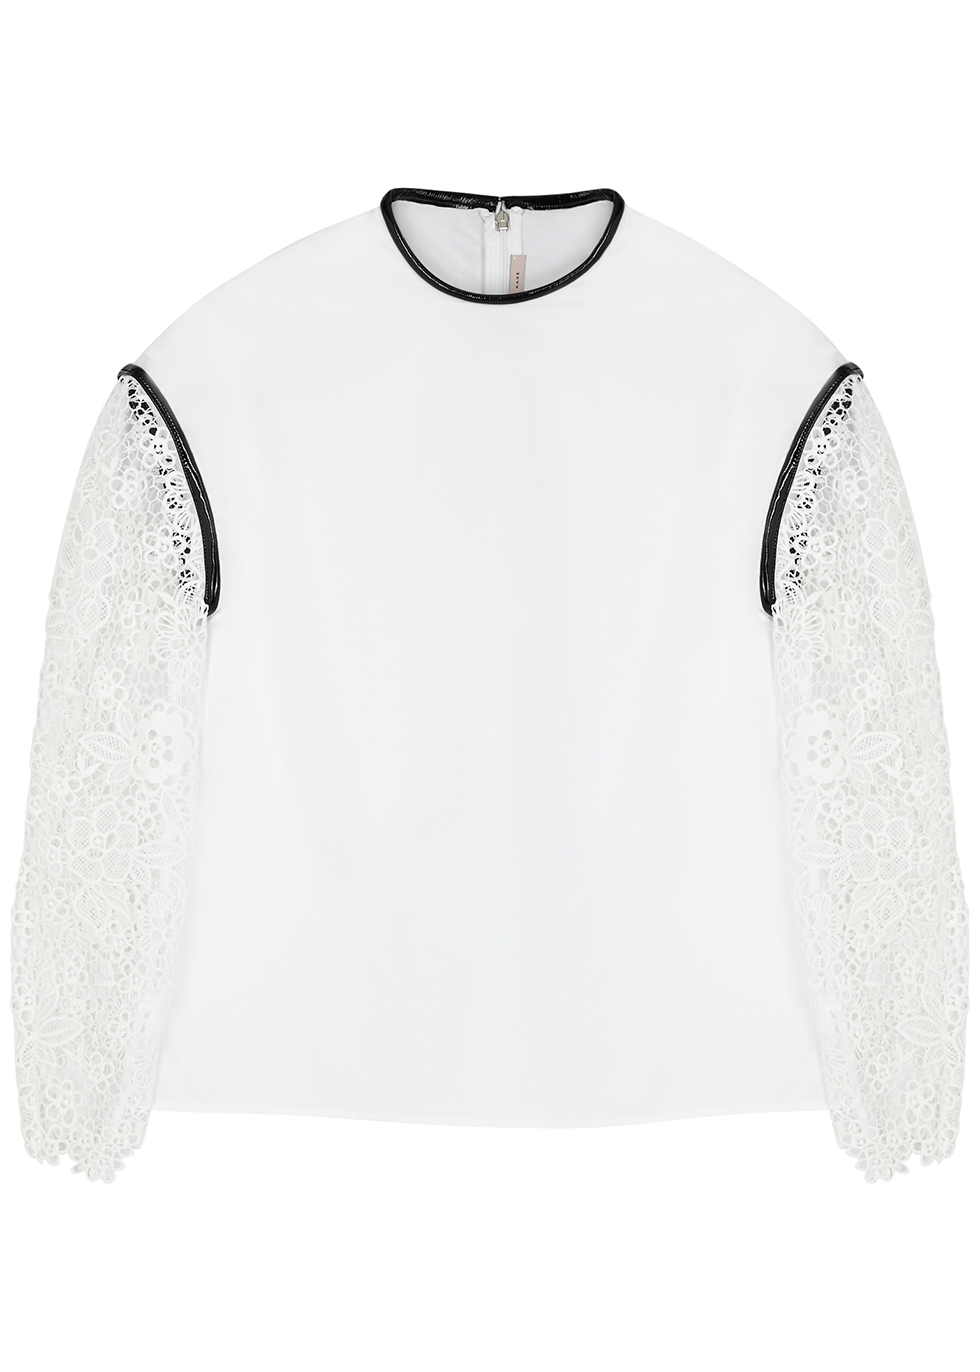 White broderie anglaise and cotton top